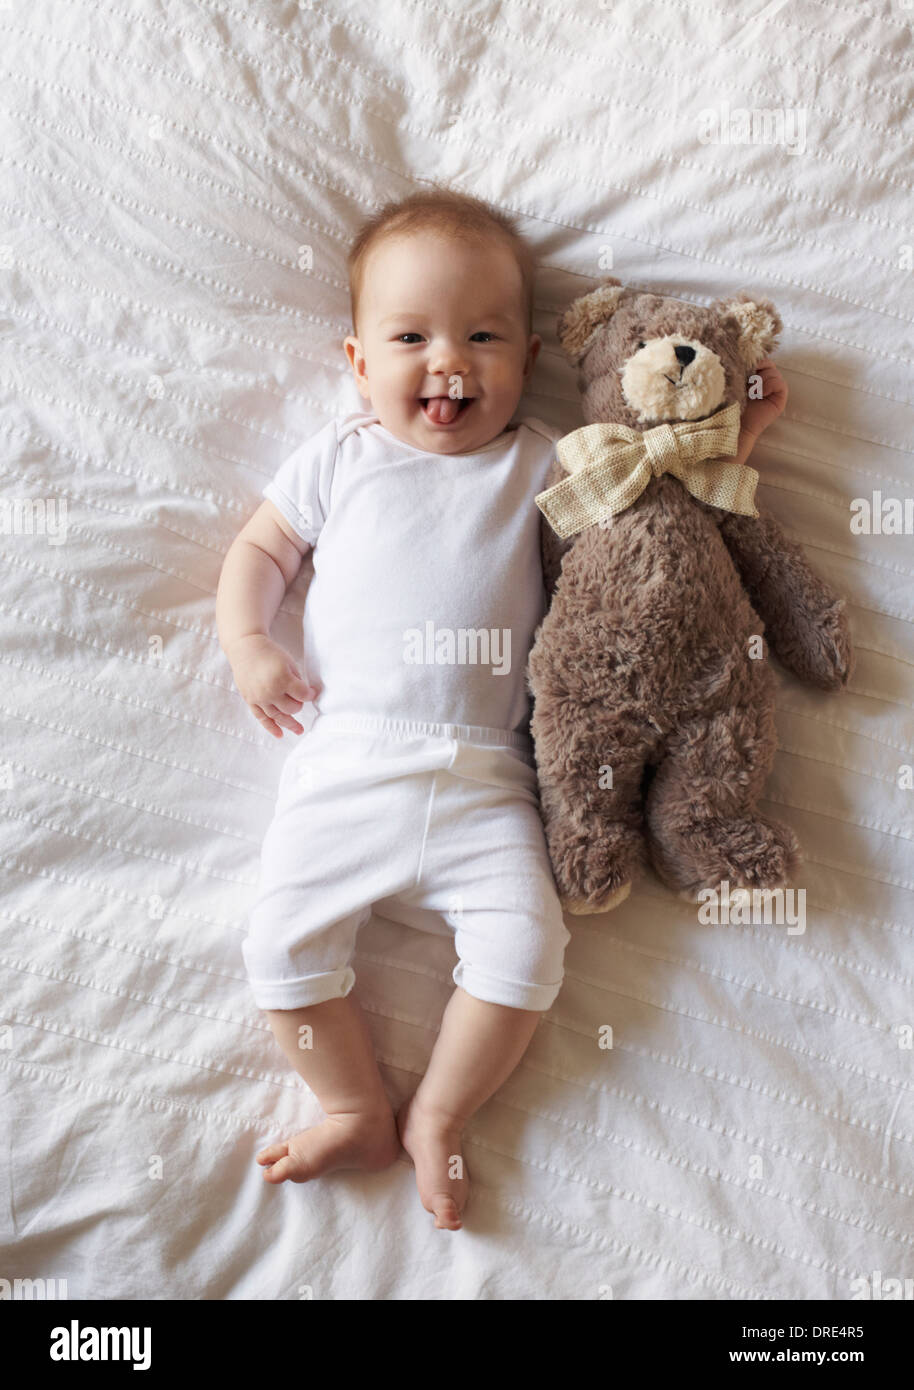 Baby laying on blanket avec ours Photo Stock